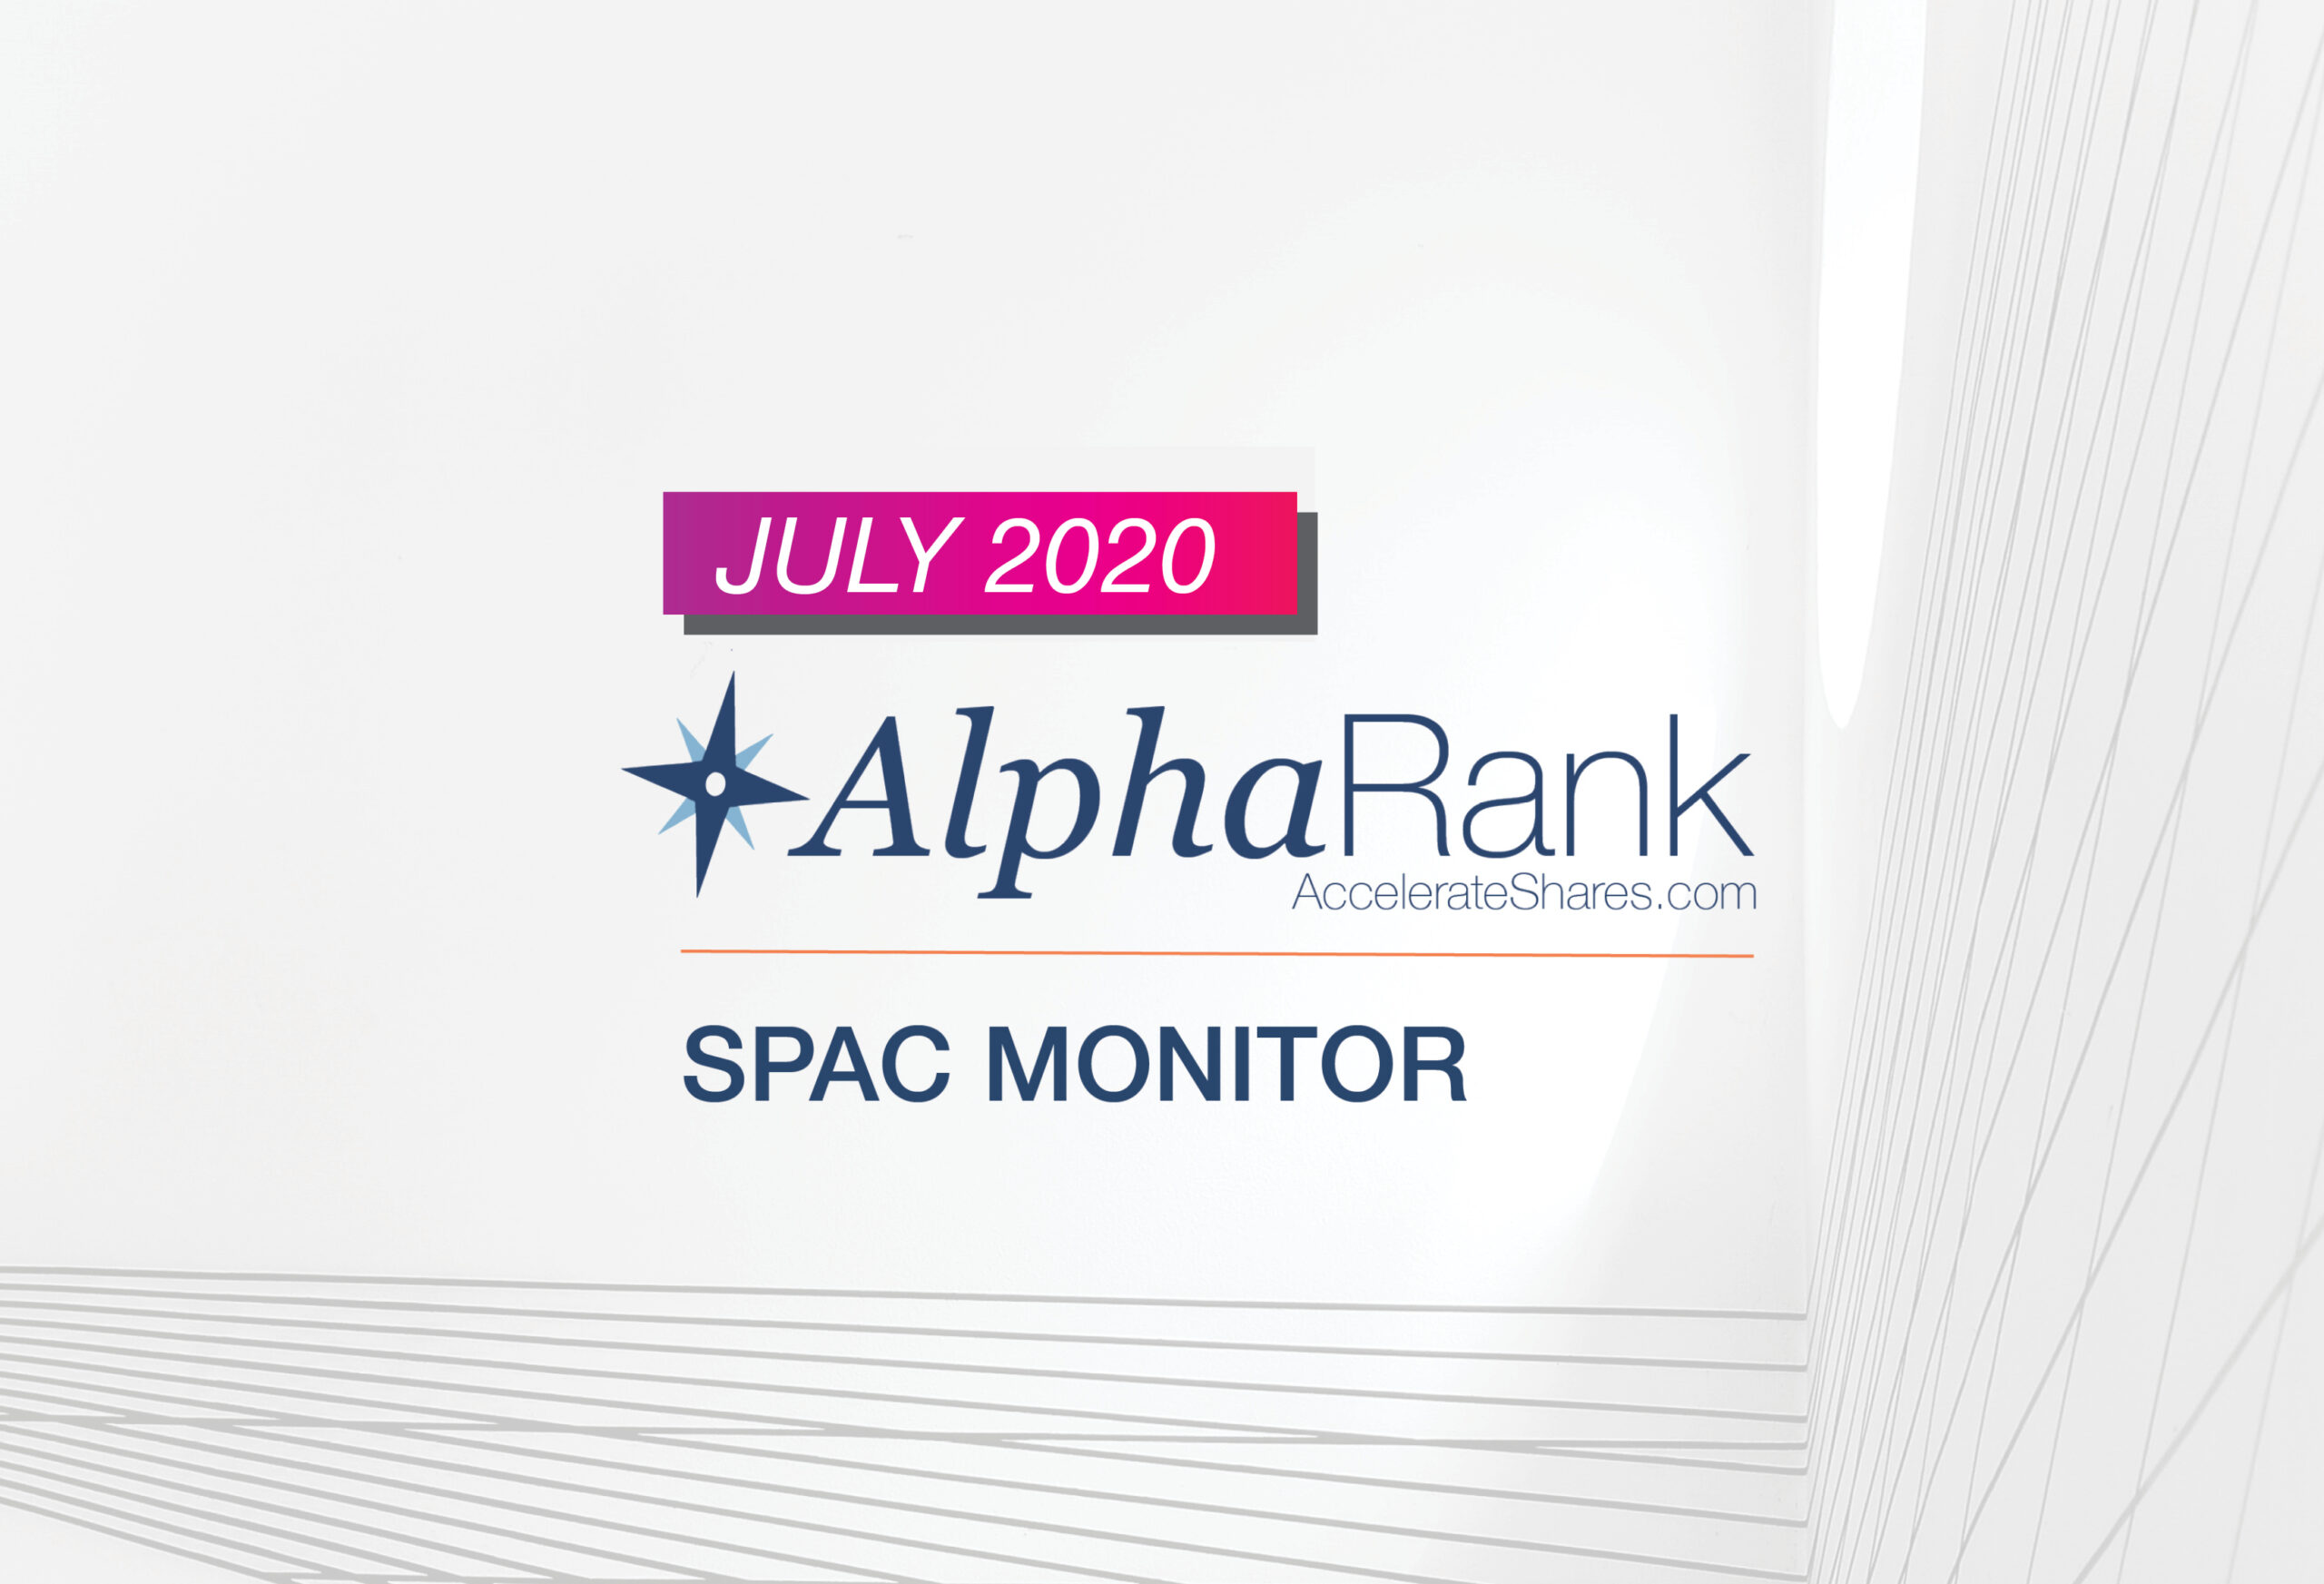 AlphaRank SPAC Monitor – July 2020